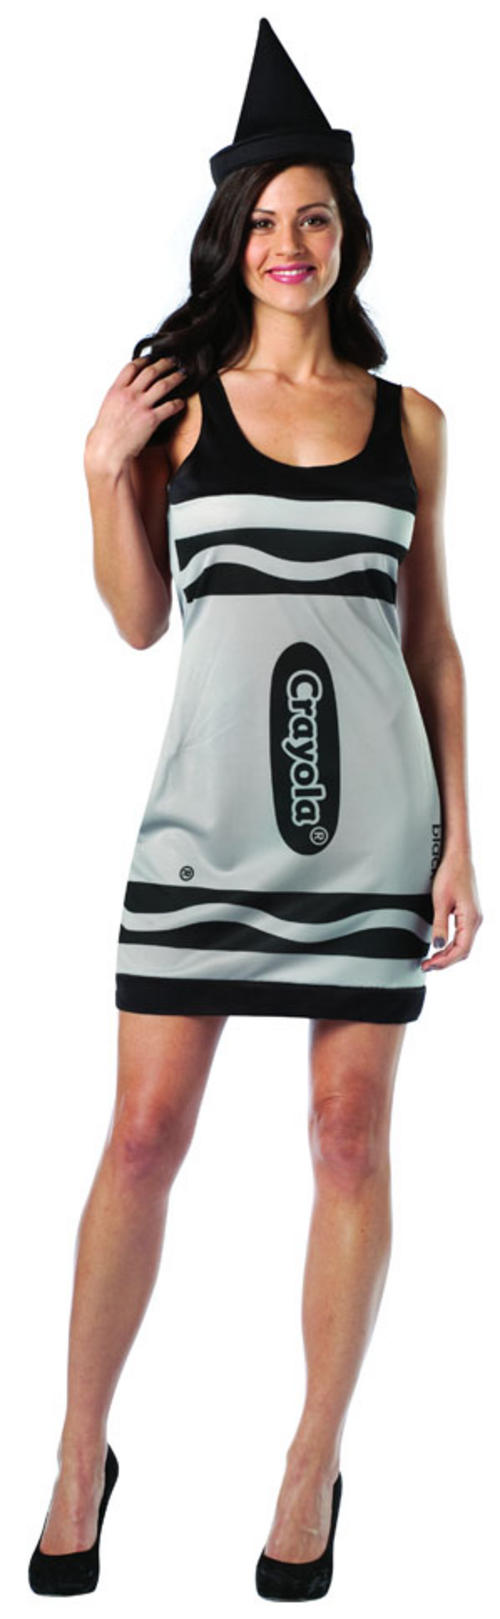 Crayola Black Crayon Dress